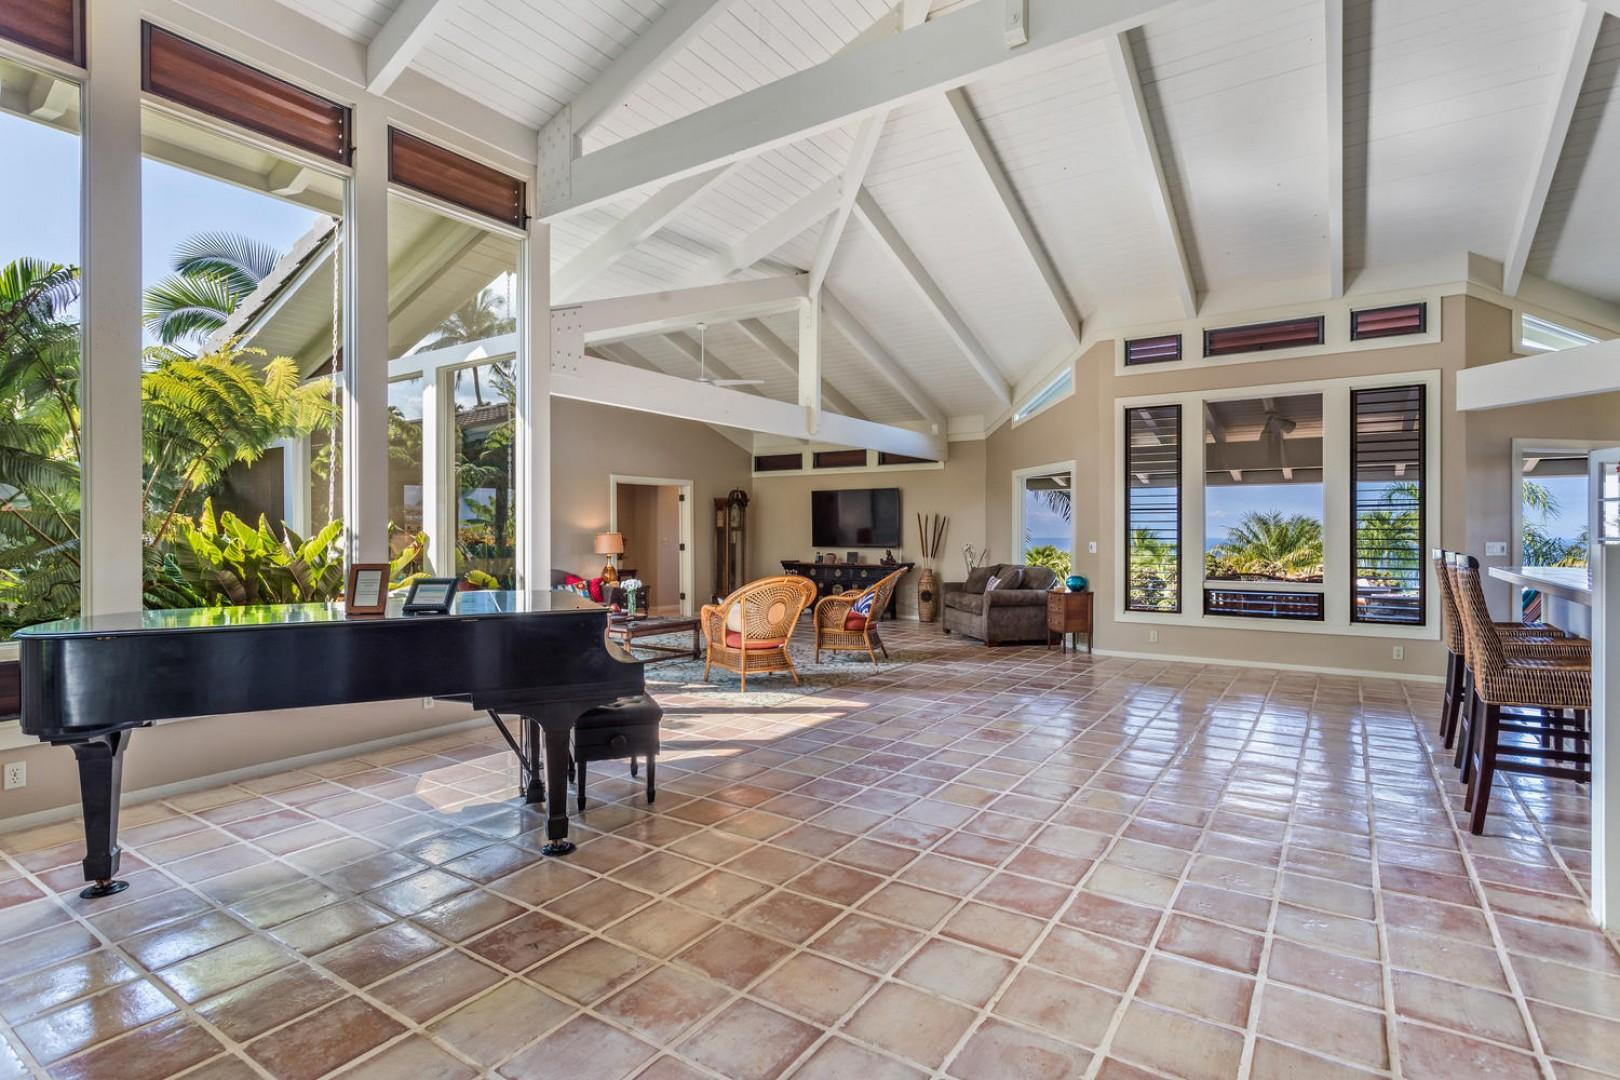 High ceilings and plenty of space for everyone.